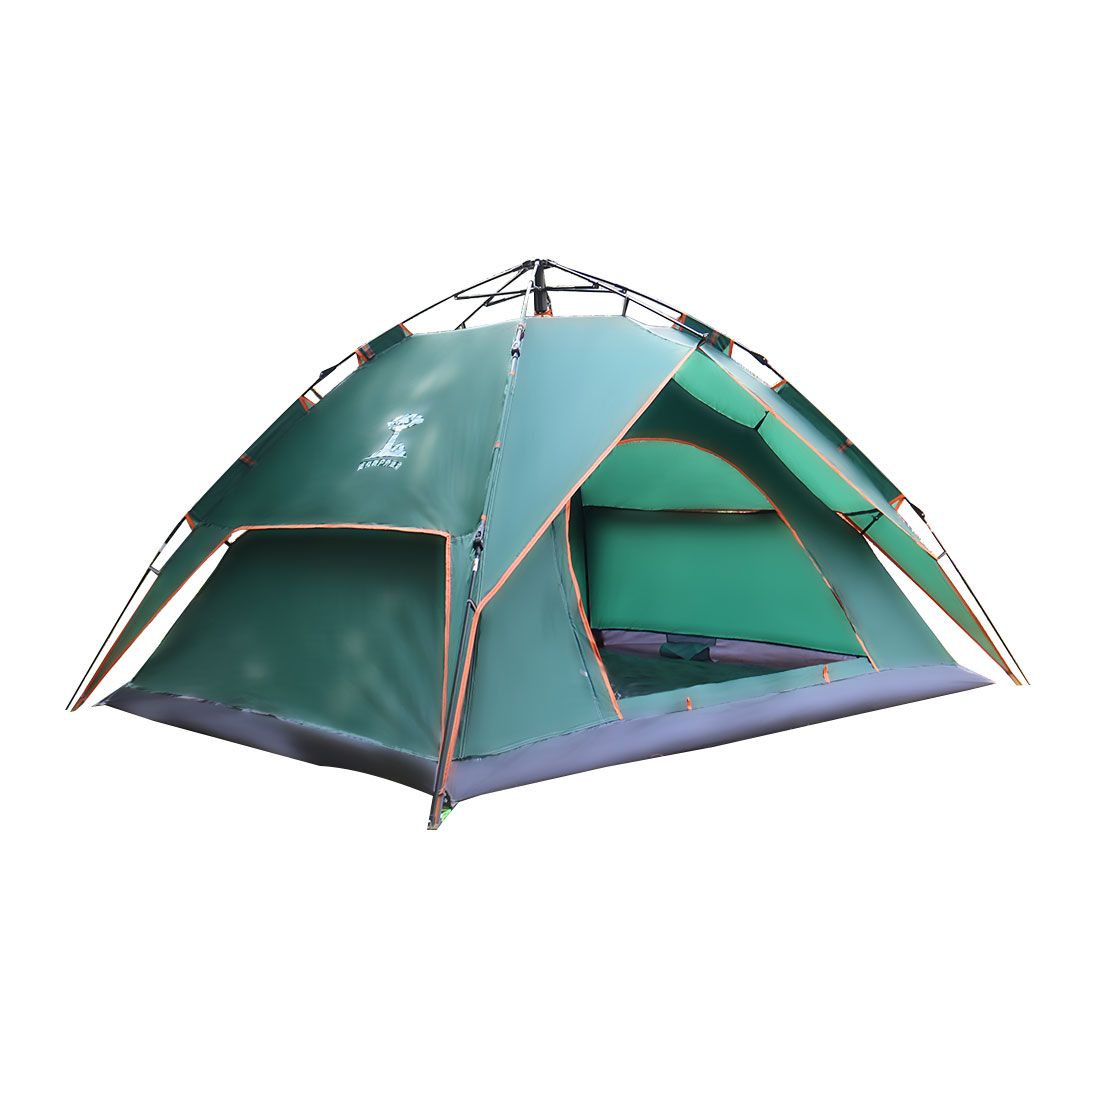 Sun Shelter Water Resistant Pop Up Automatic Tent 3-4 Person Blackish Green